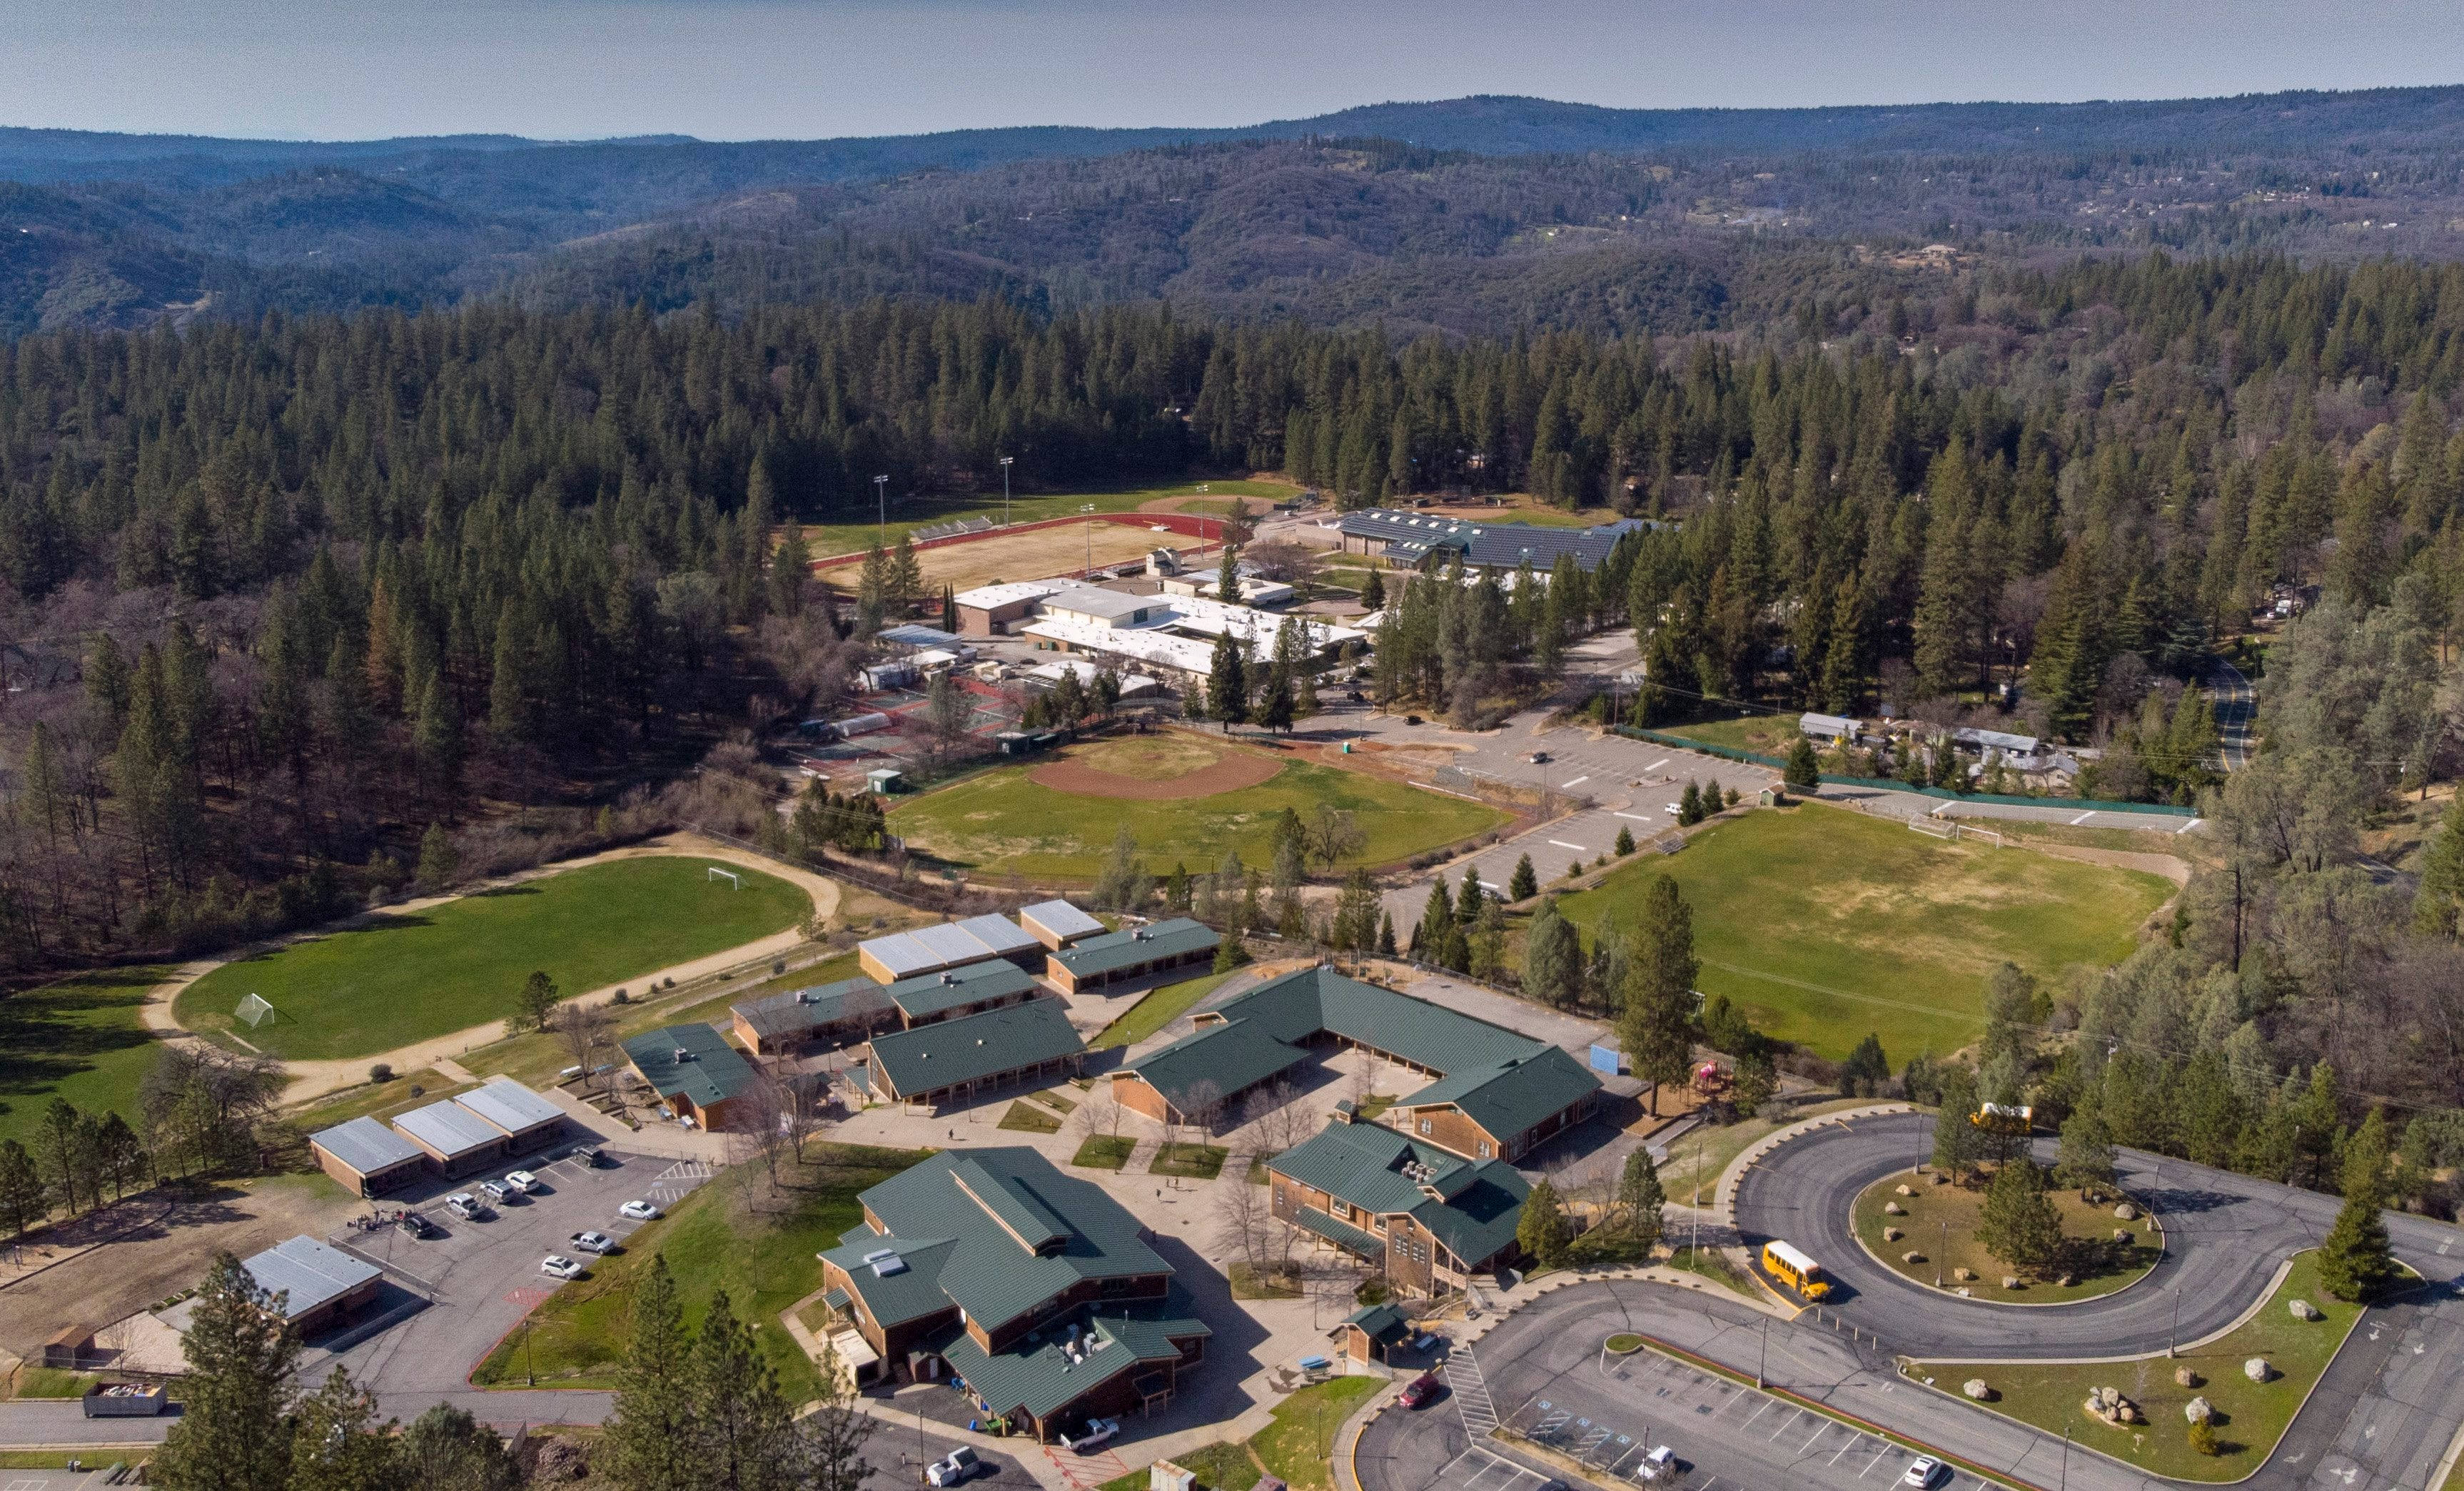 Colfax's elementary and high schools, seen on Thursday, March 14, 2019, are surrounded by trees but could become a safe zone in the event of a wildfire similar to the one that destroyed Paradise.